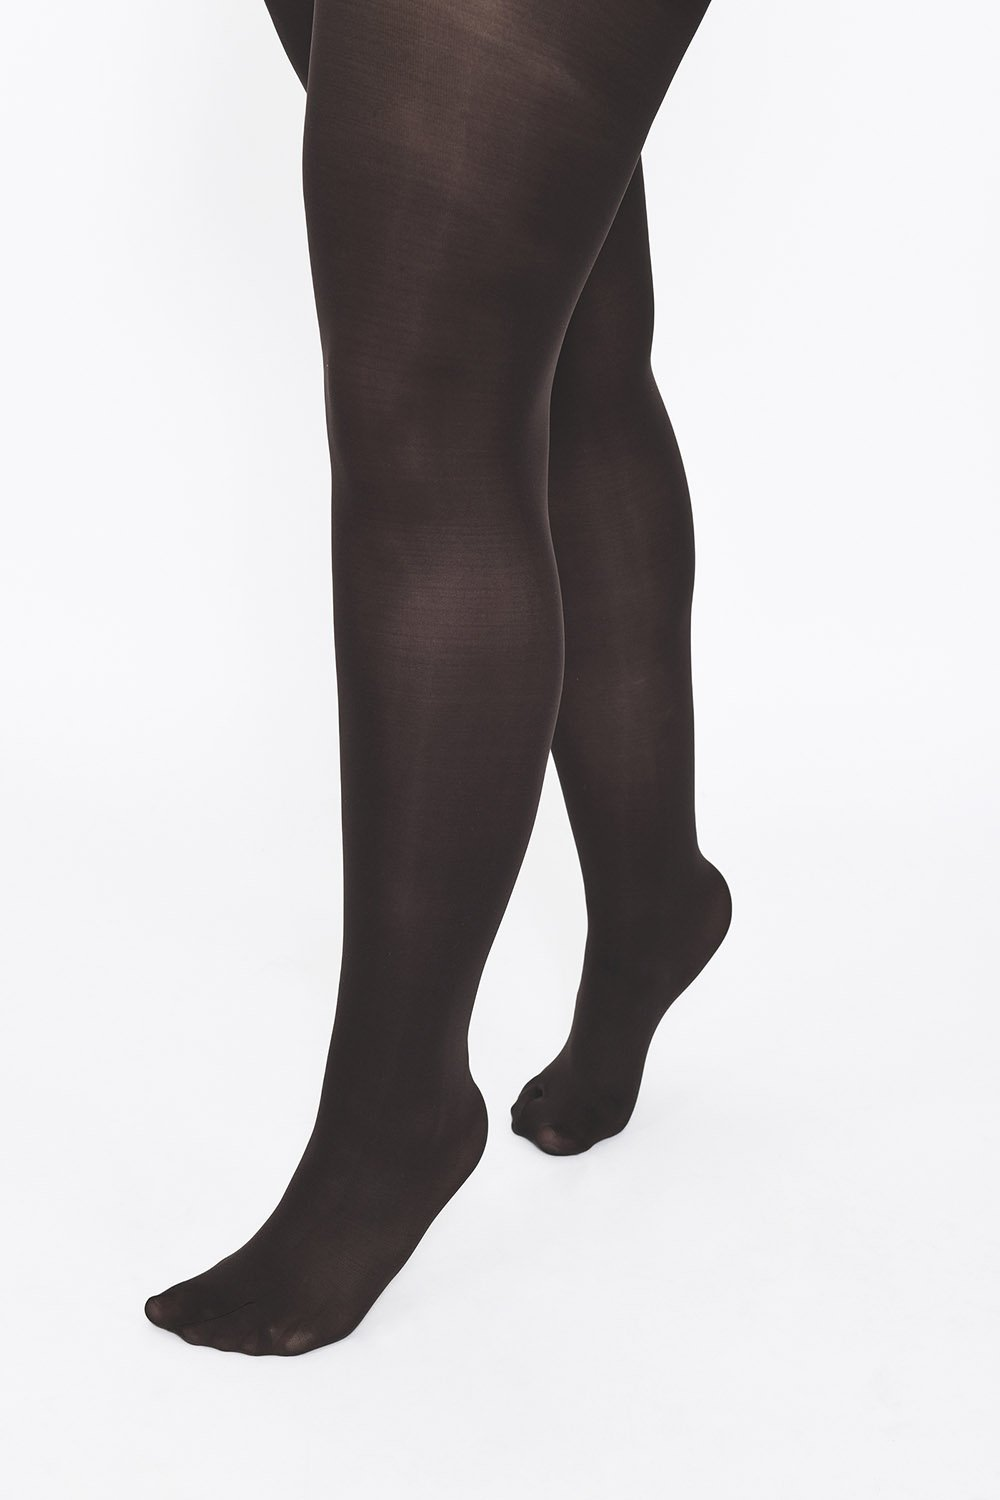 Plus Size Hazel 100 Denier Tights